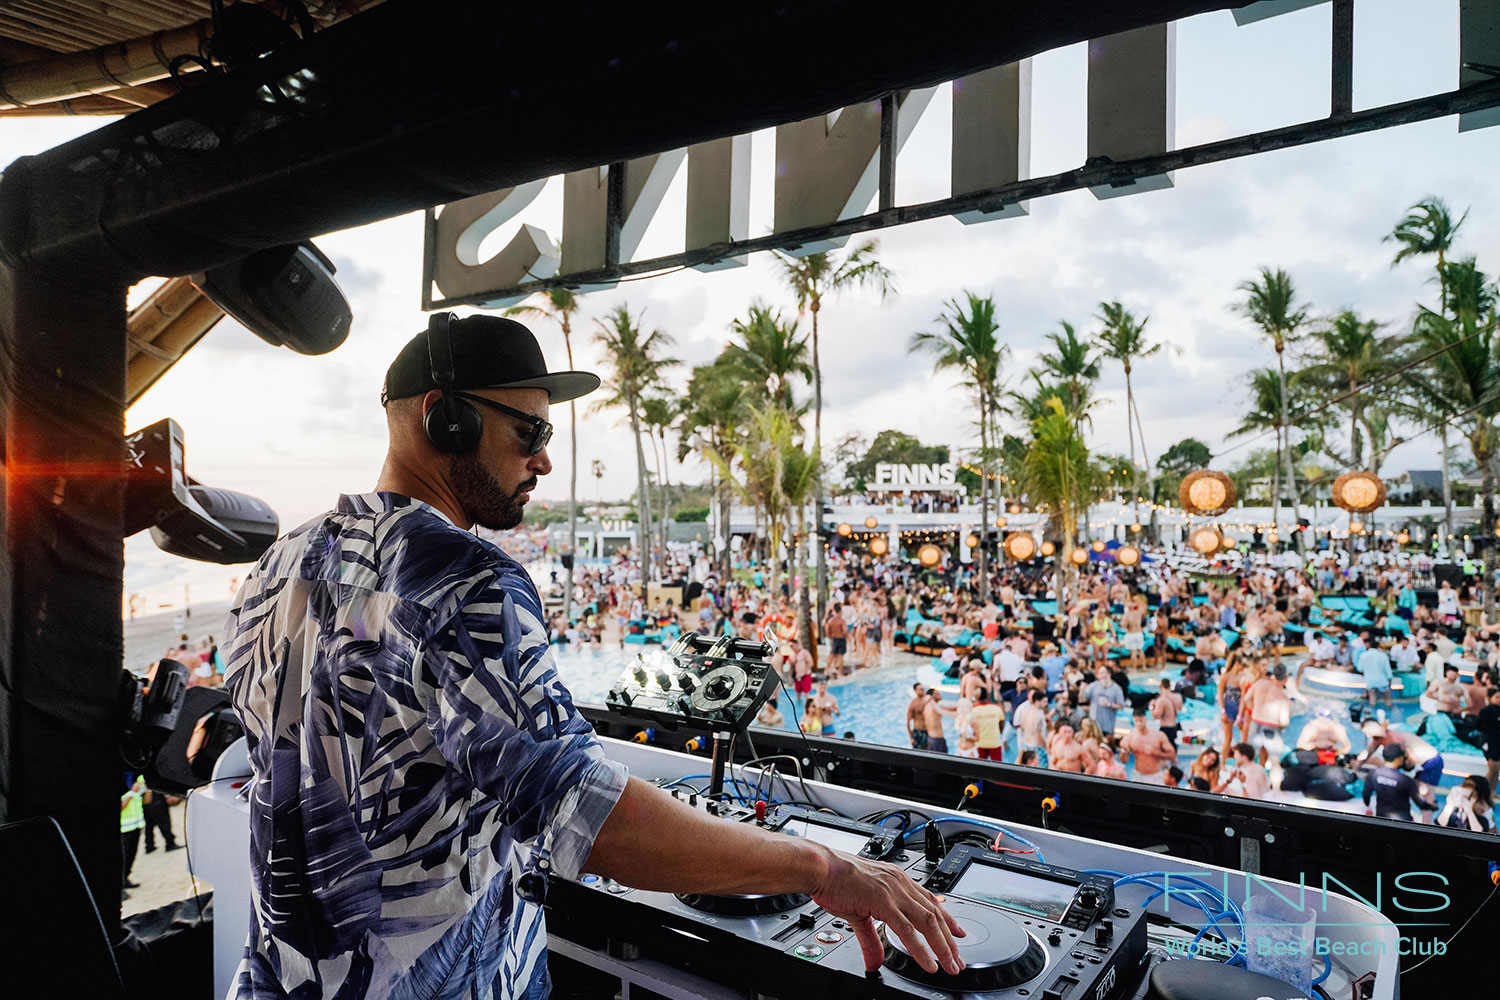 Finns Beach Club Grand Opening Party